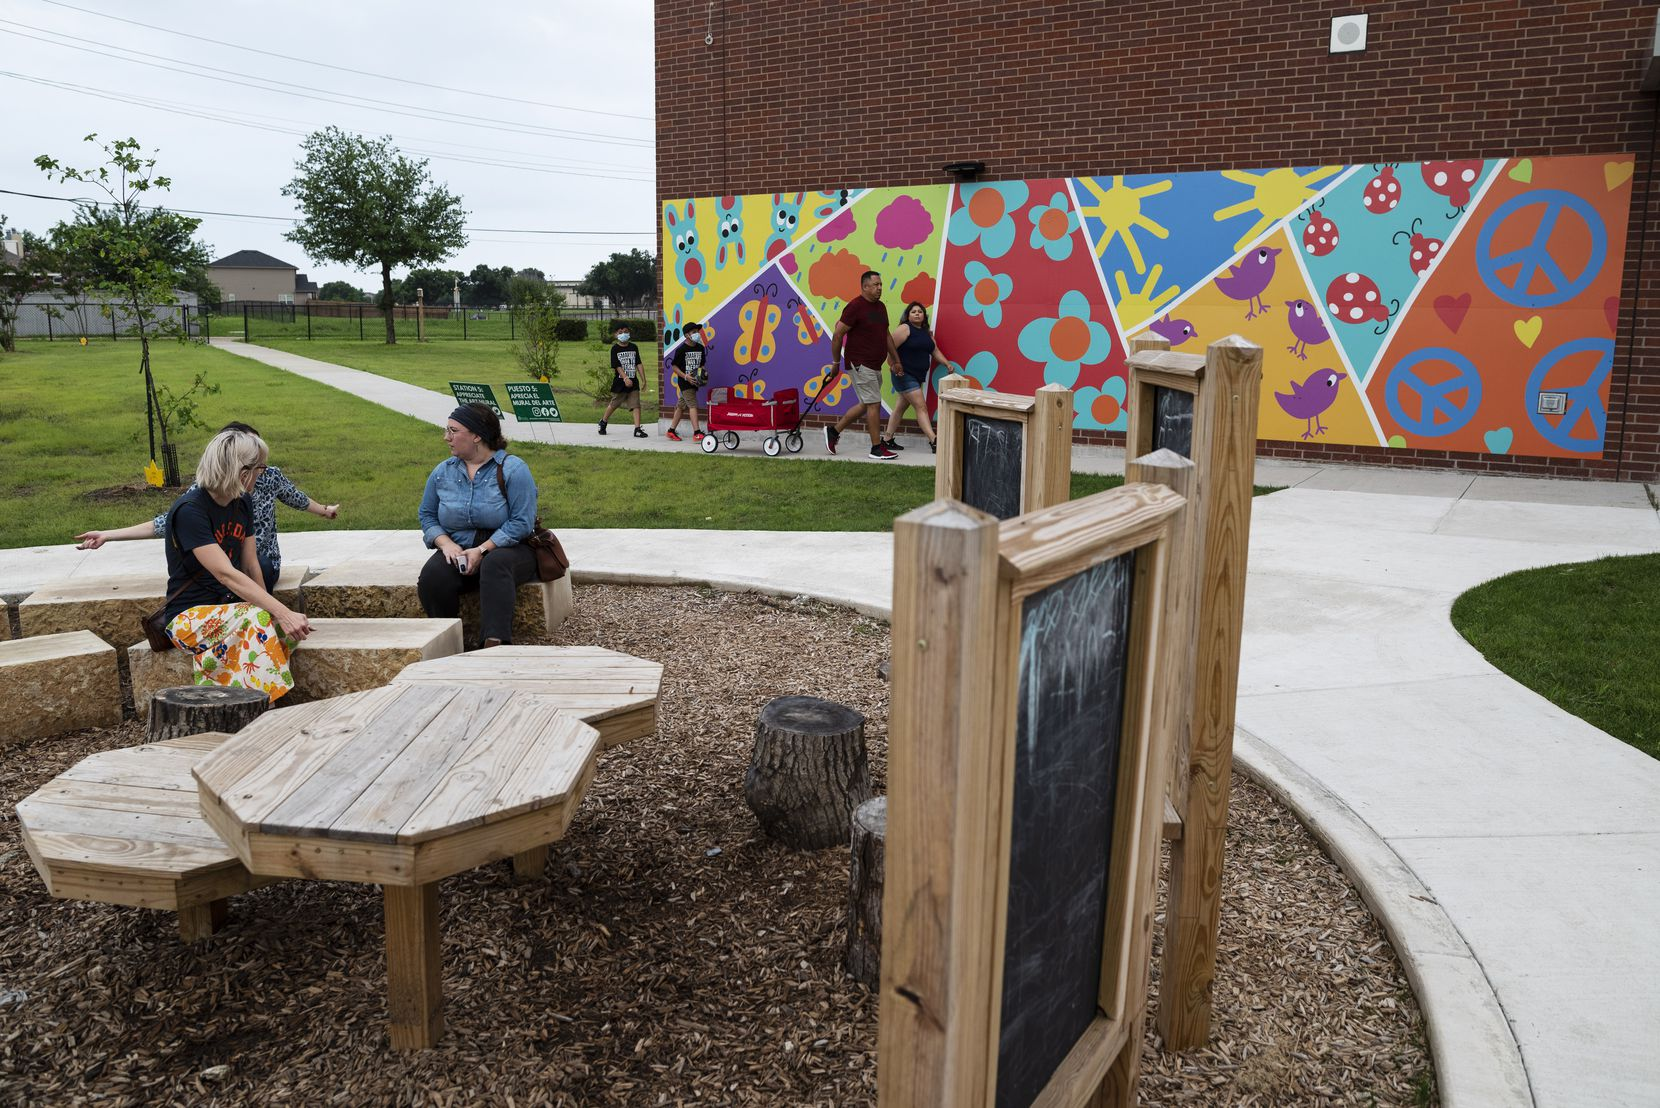 Families and parks advocates gathered Tuesday evening to celebrate the opening of the new and expanded greenspace for the community at Frank Guzick Elementary in the Buckner Terrace neighborhood south of Interstate 30. Artist Abi Salami created the mural for this Cool School Neighborhood Parks location.